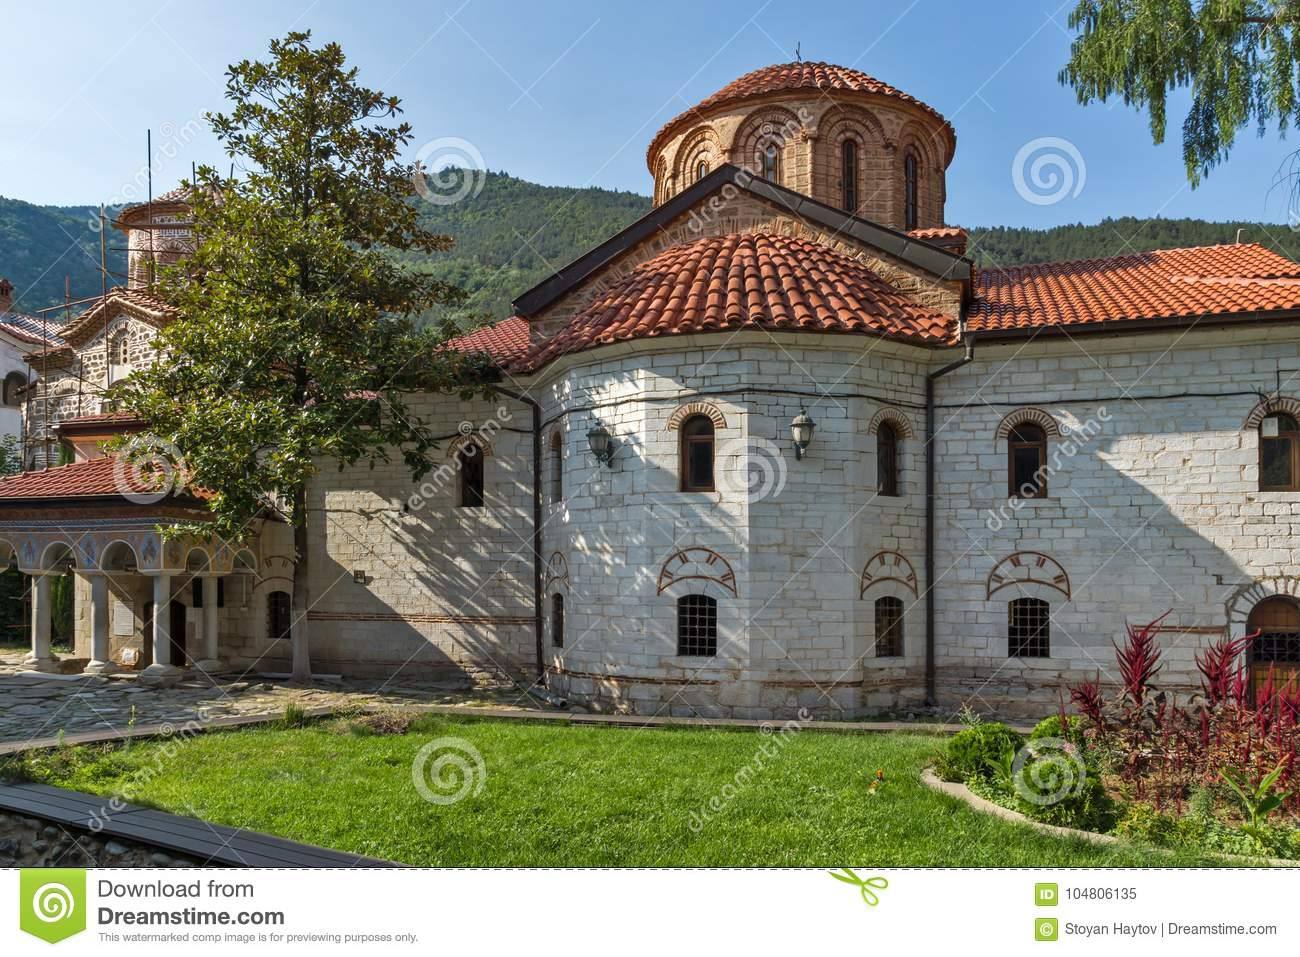 Old churches in Medieval Bachkovo Monastery, Bulgaria